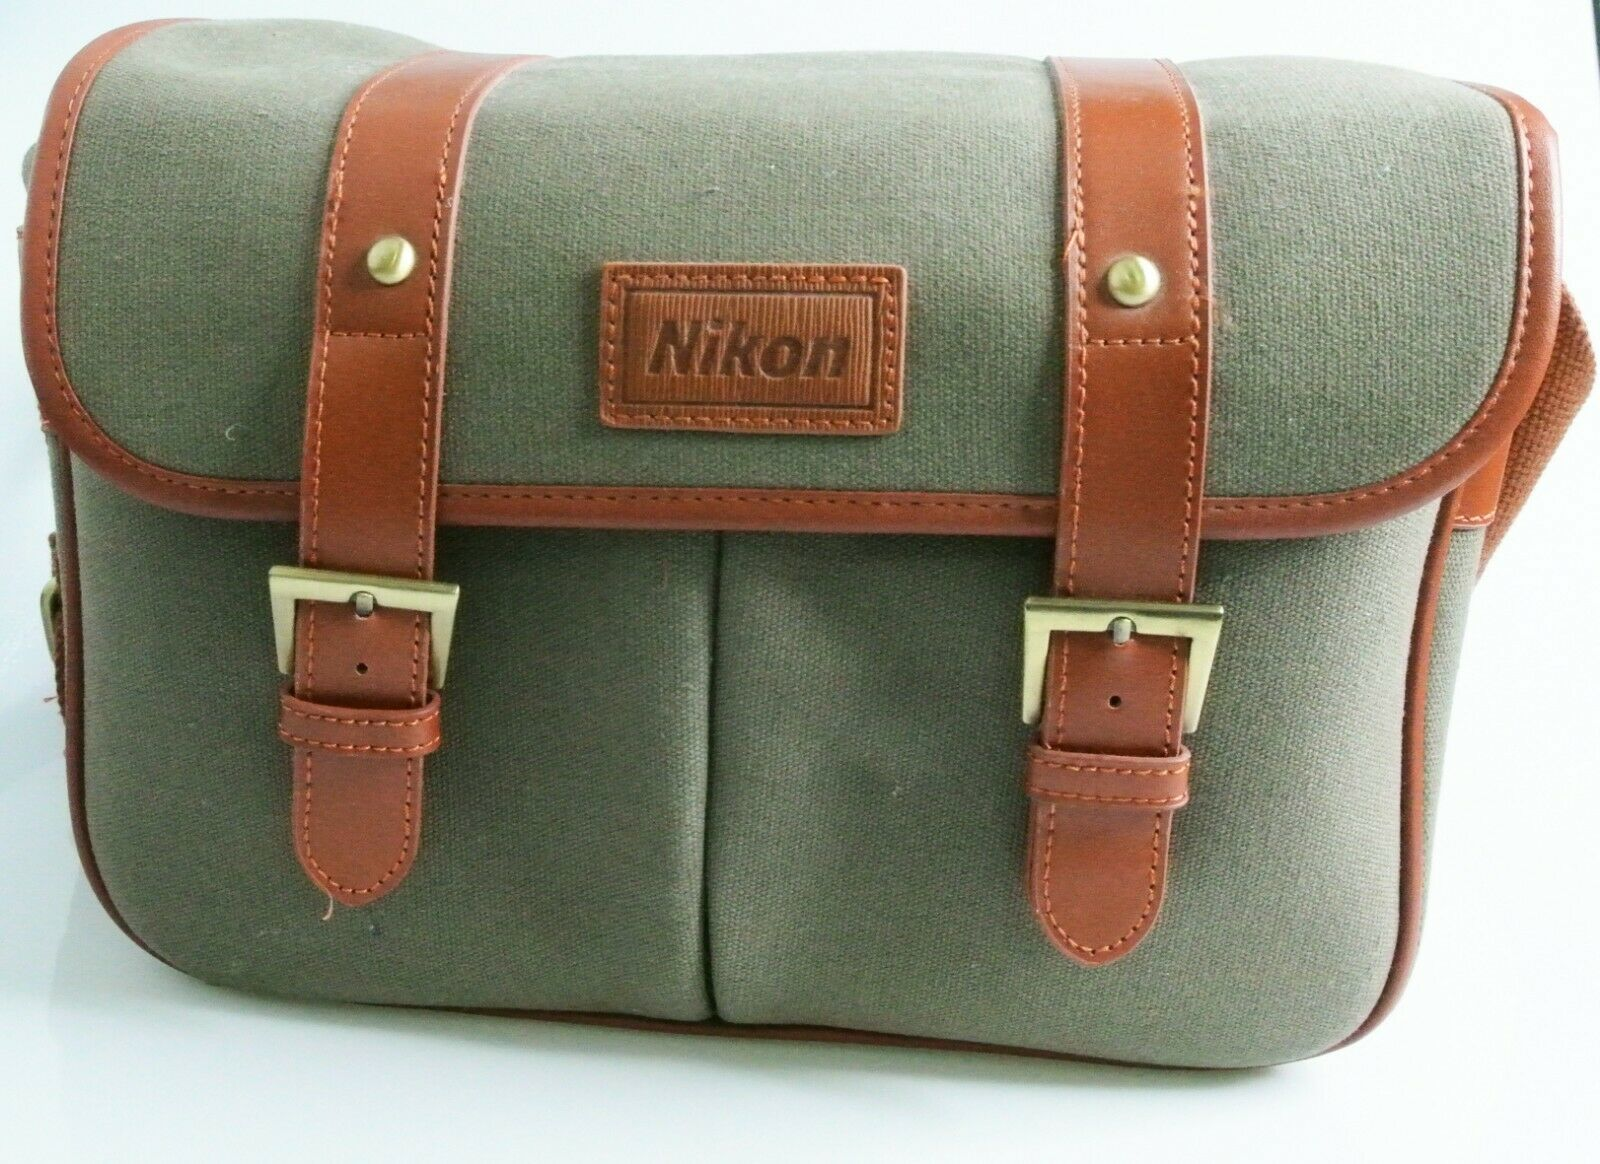 Nikon DSLR BAG/Nicon genuine camera shoulder bag Nicon SLR Canvas bag